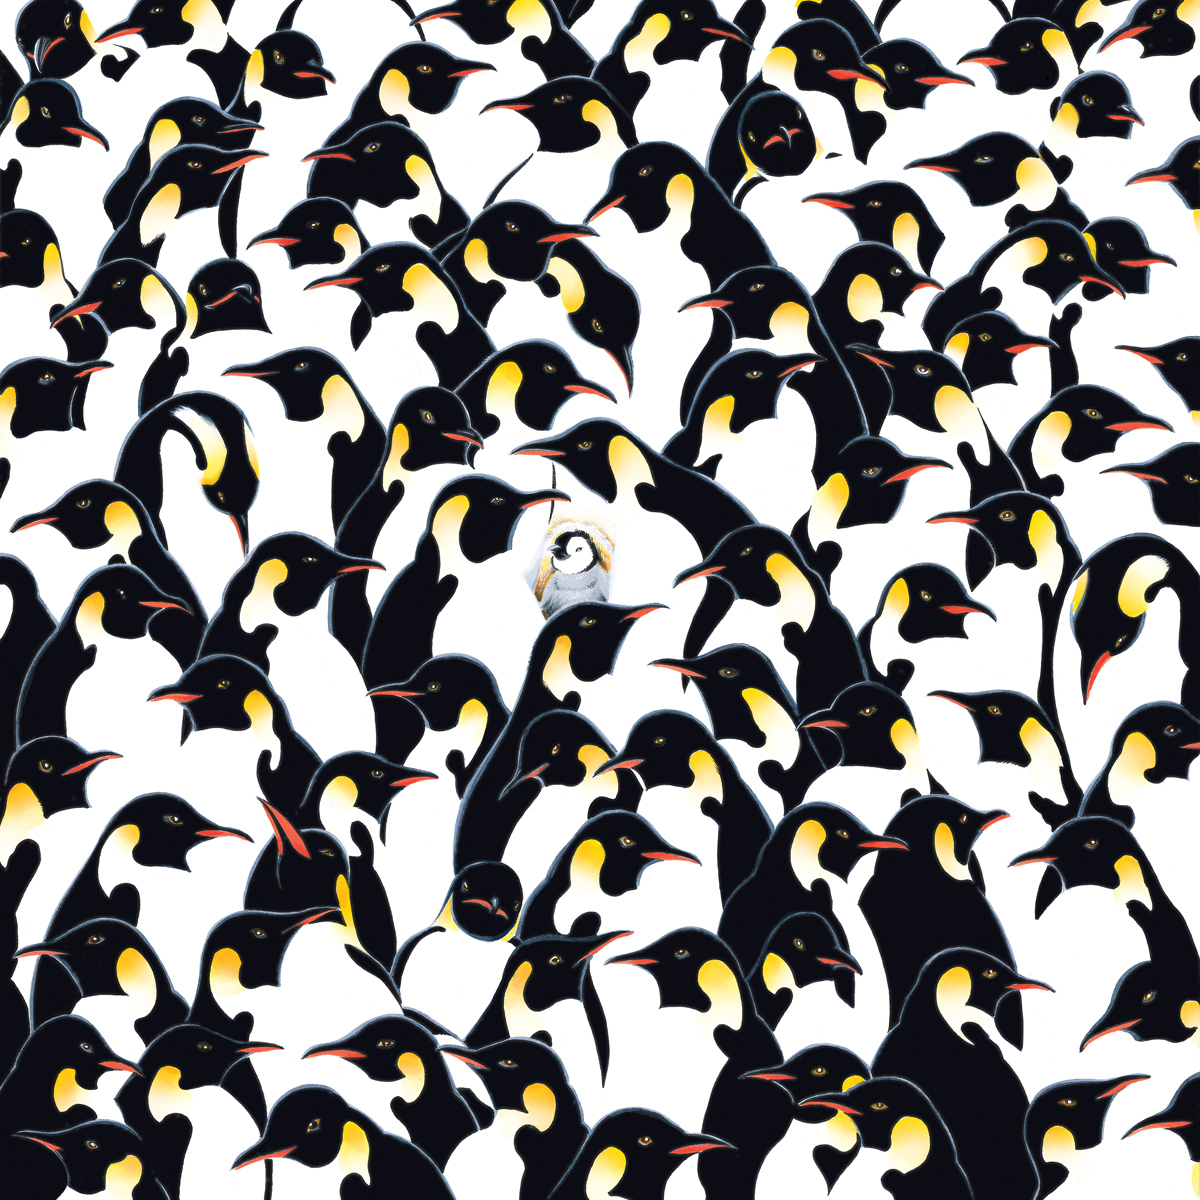 World's Most Difficult Jigsaw Puzzle - Penguins Animals Jigsaw Puzzle